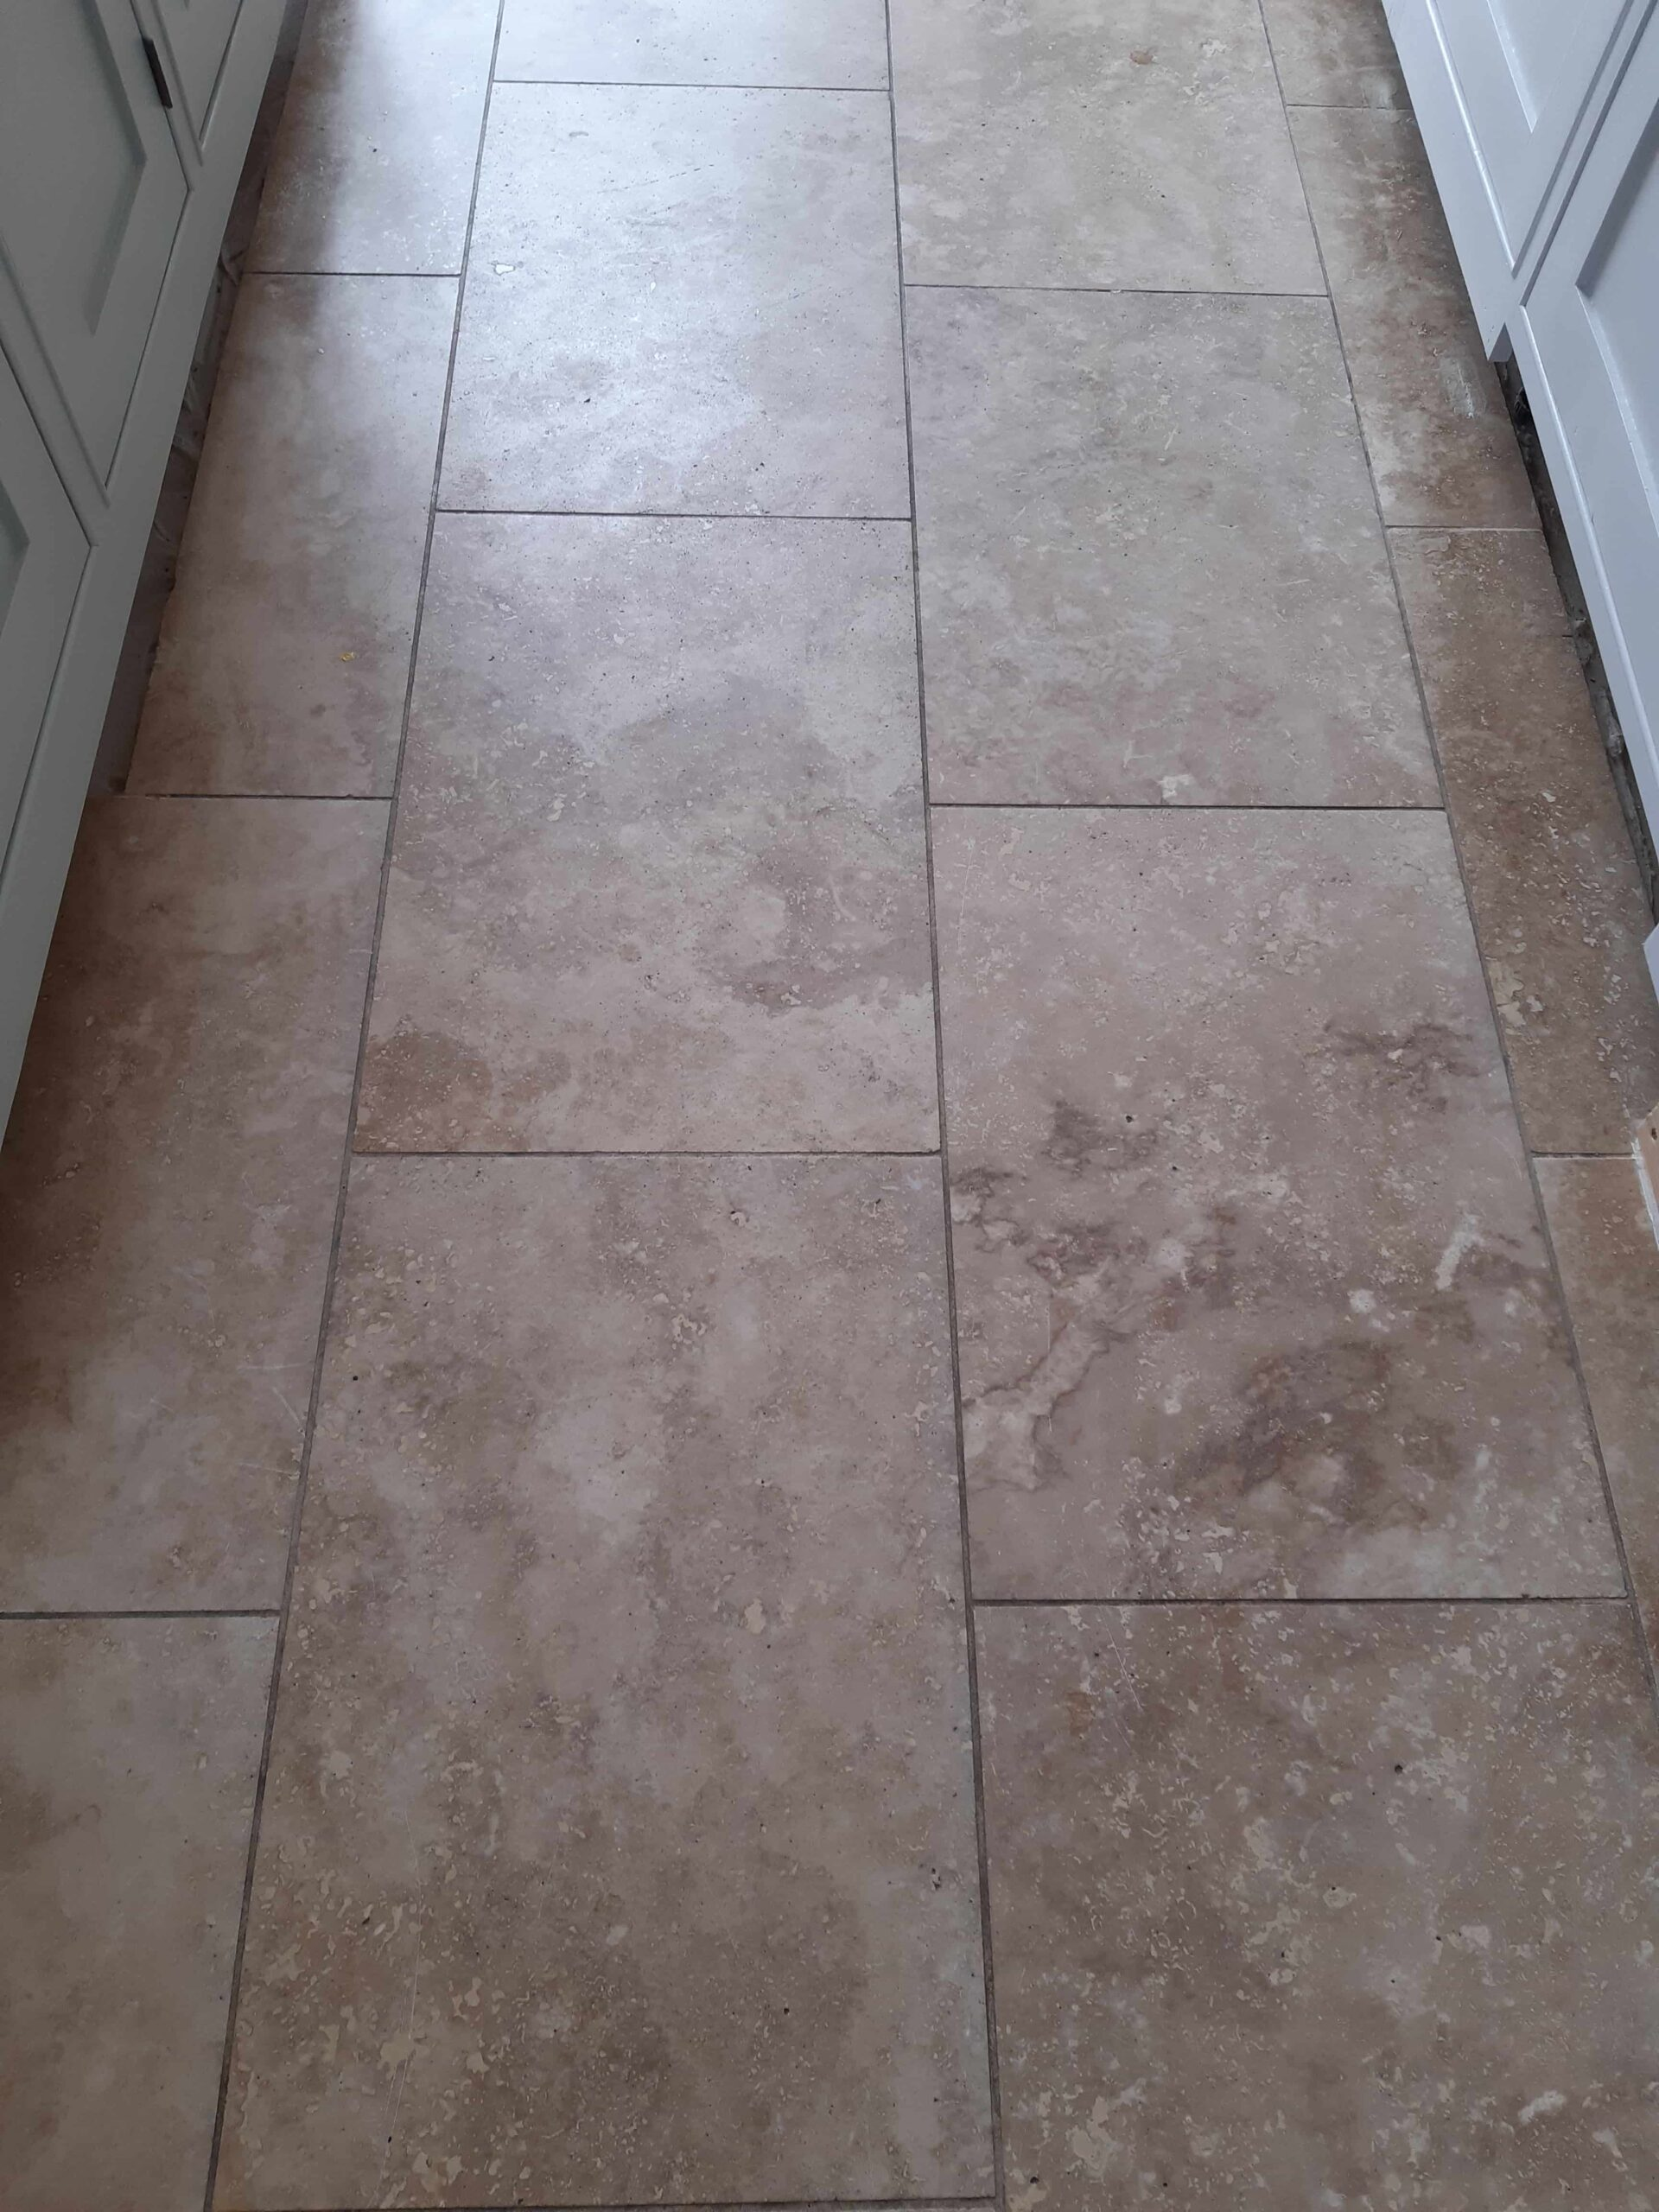 Travertine Kitchen Floor Before Face Lift Burgh Castle